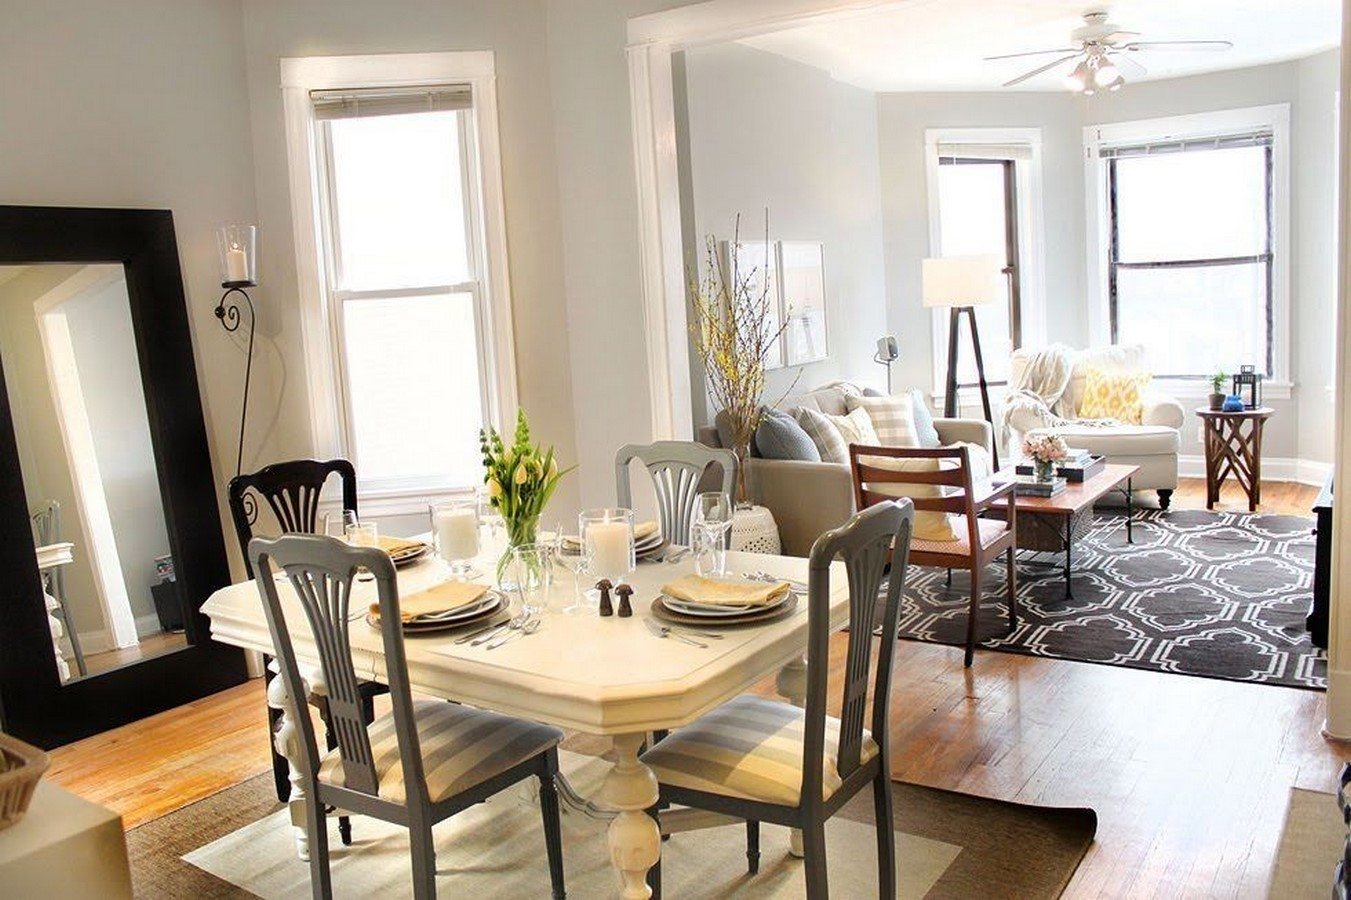 10 Dining rooms ideas that can enhance the space - Sheet12